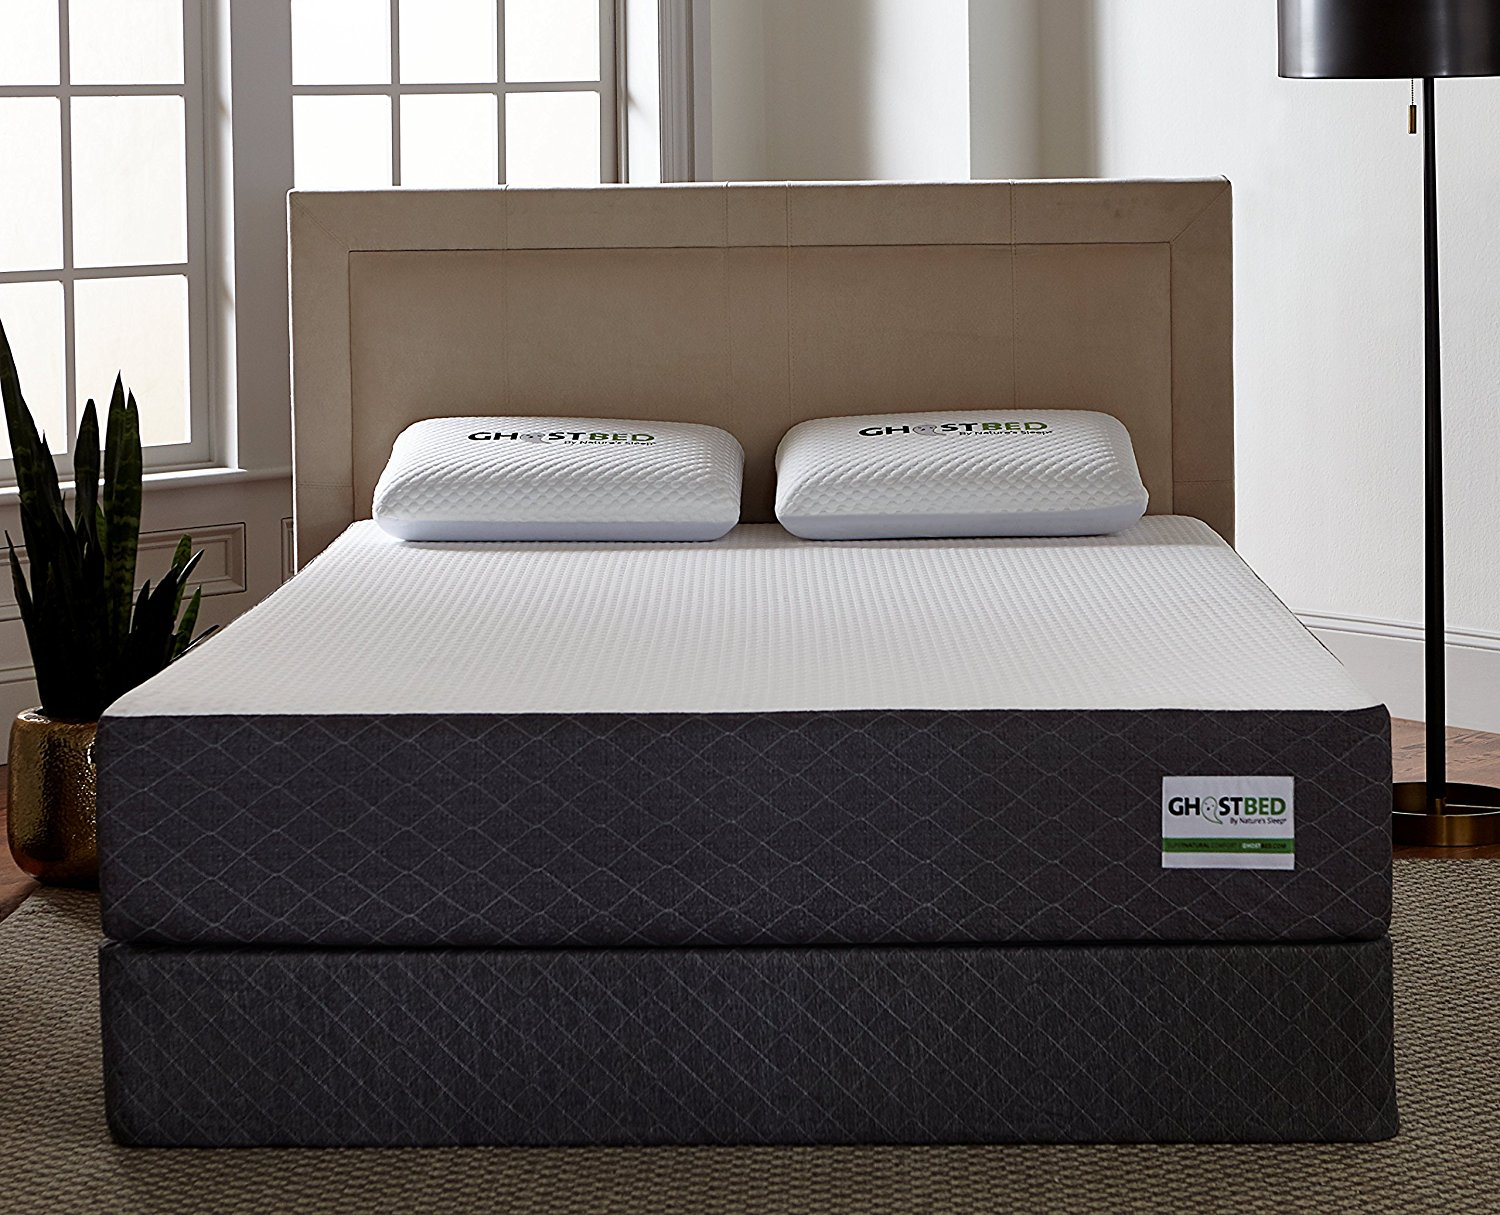 ghostbed vs leesa mattress comparison review